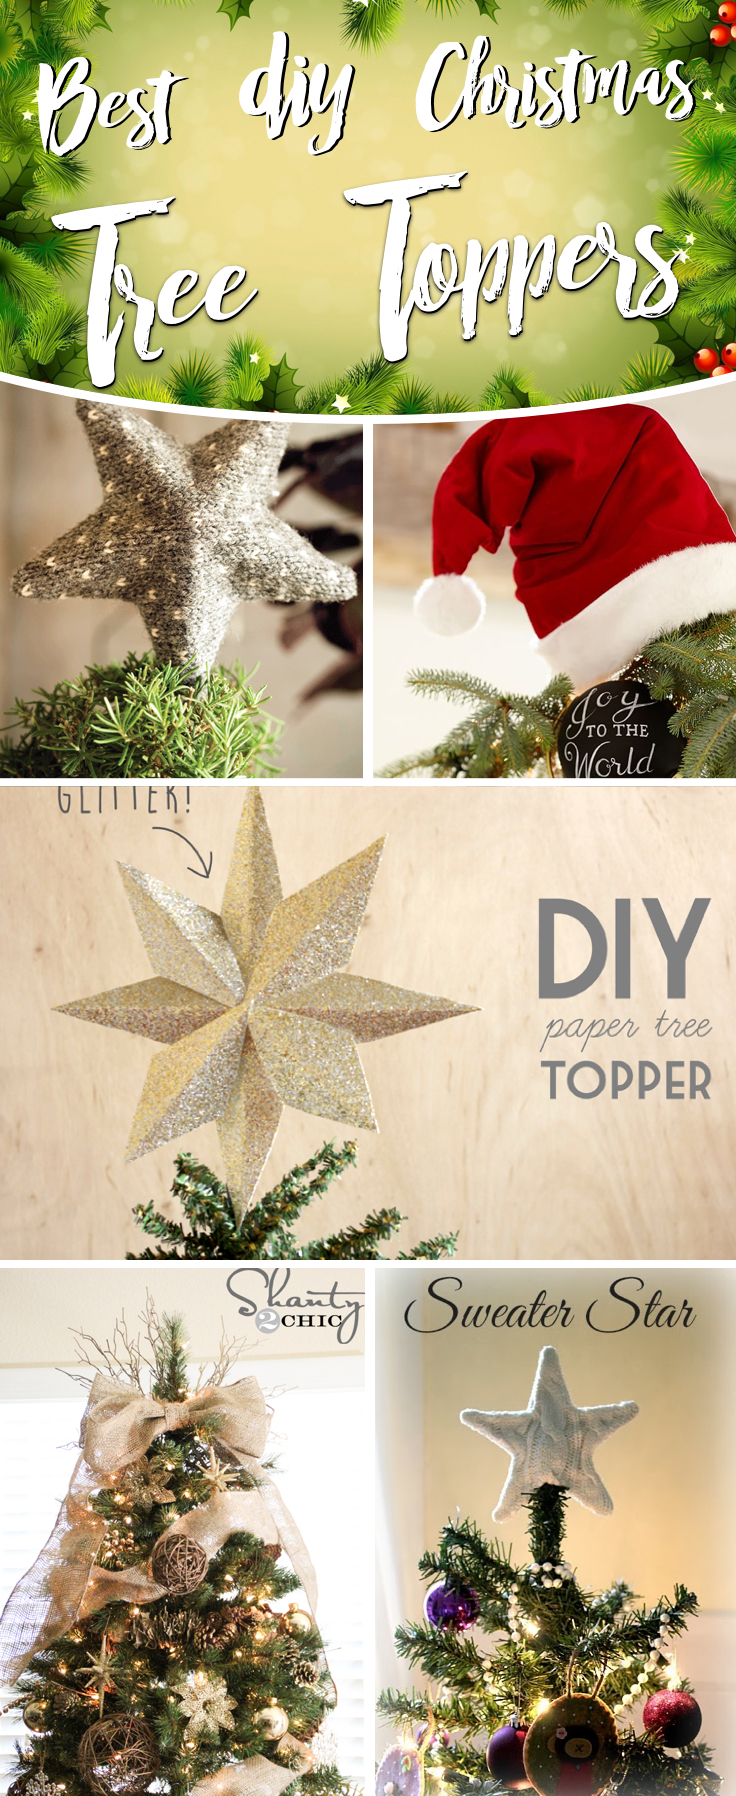 25 ideas on christmas tree toppers that can reinvigorate your festivities - Homemade Christmas Tree Topper Ideas